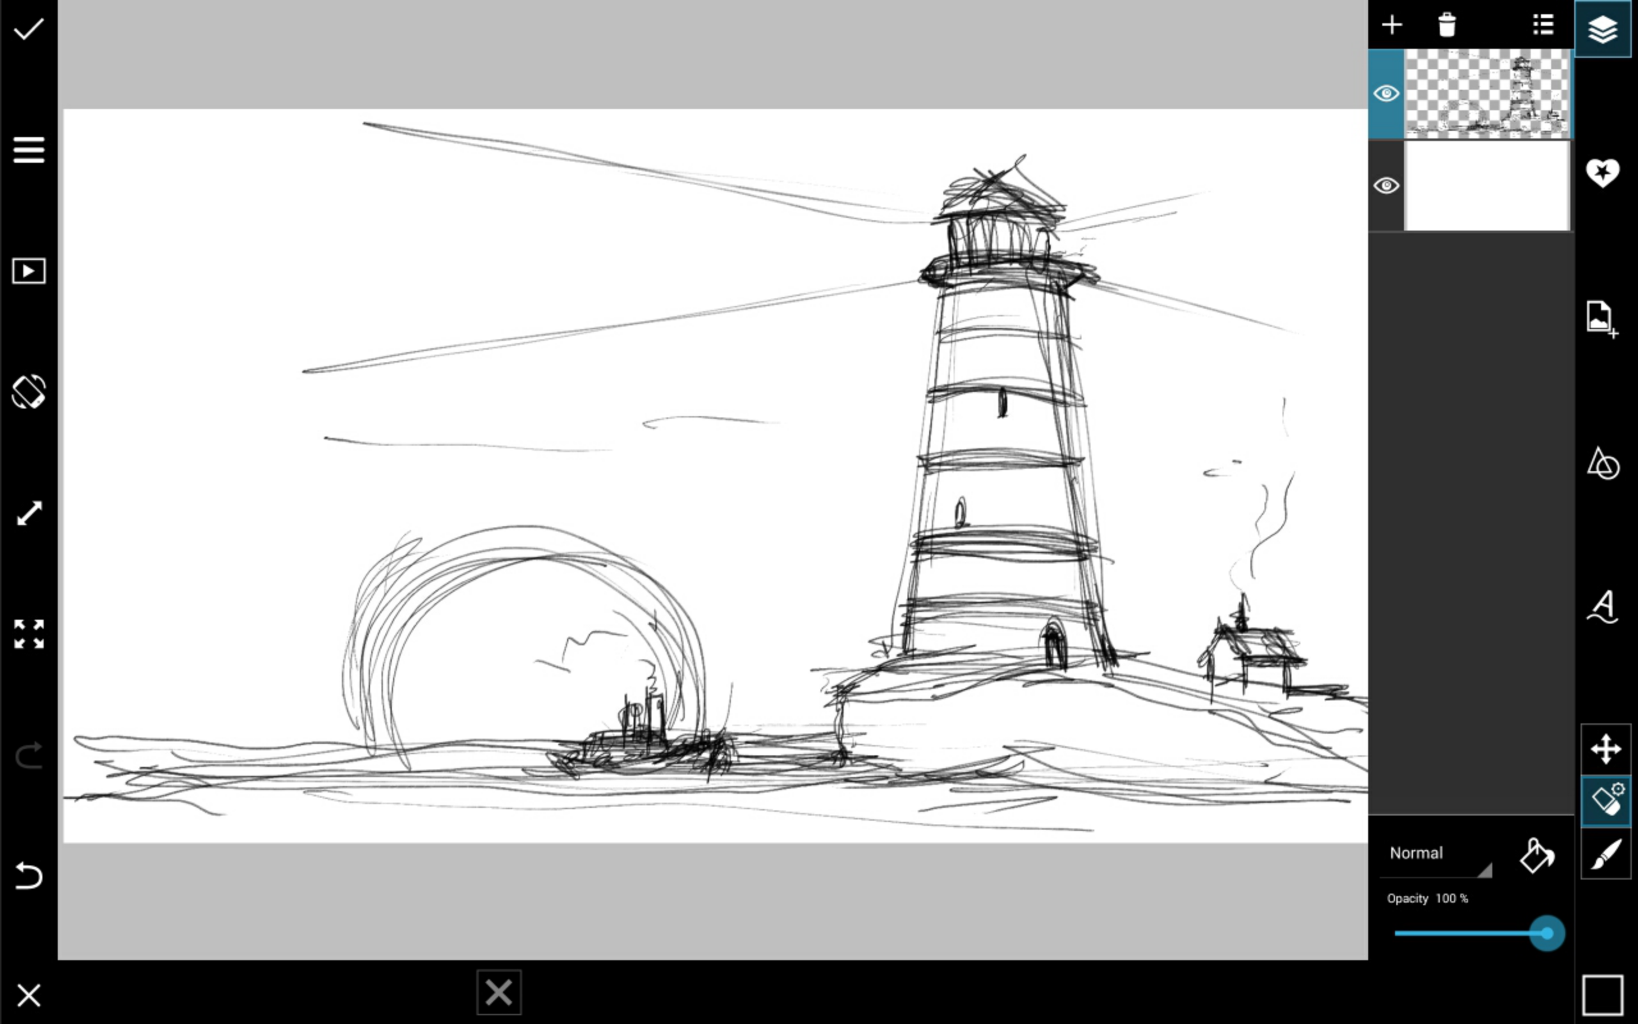 Drawn lighhouse line drawing Step PicsArt with  by